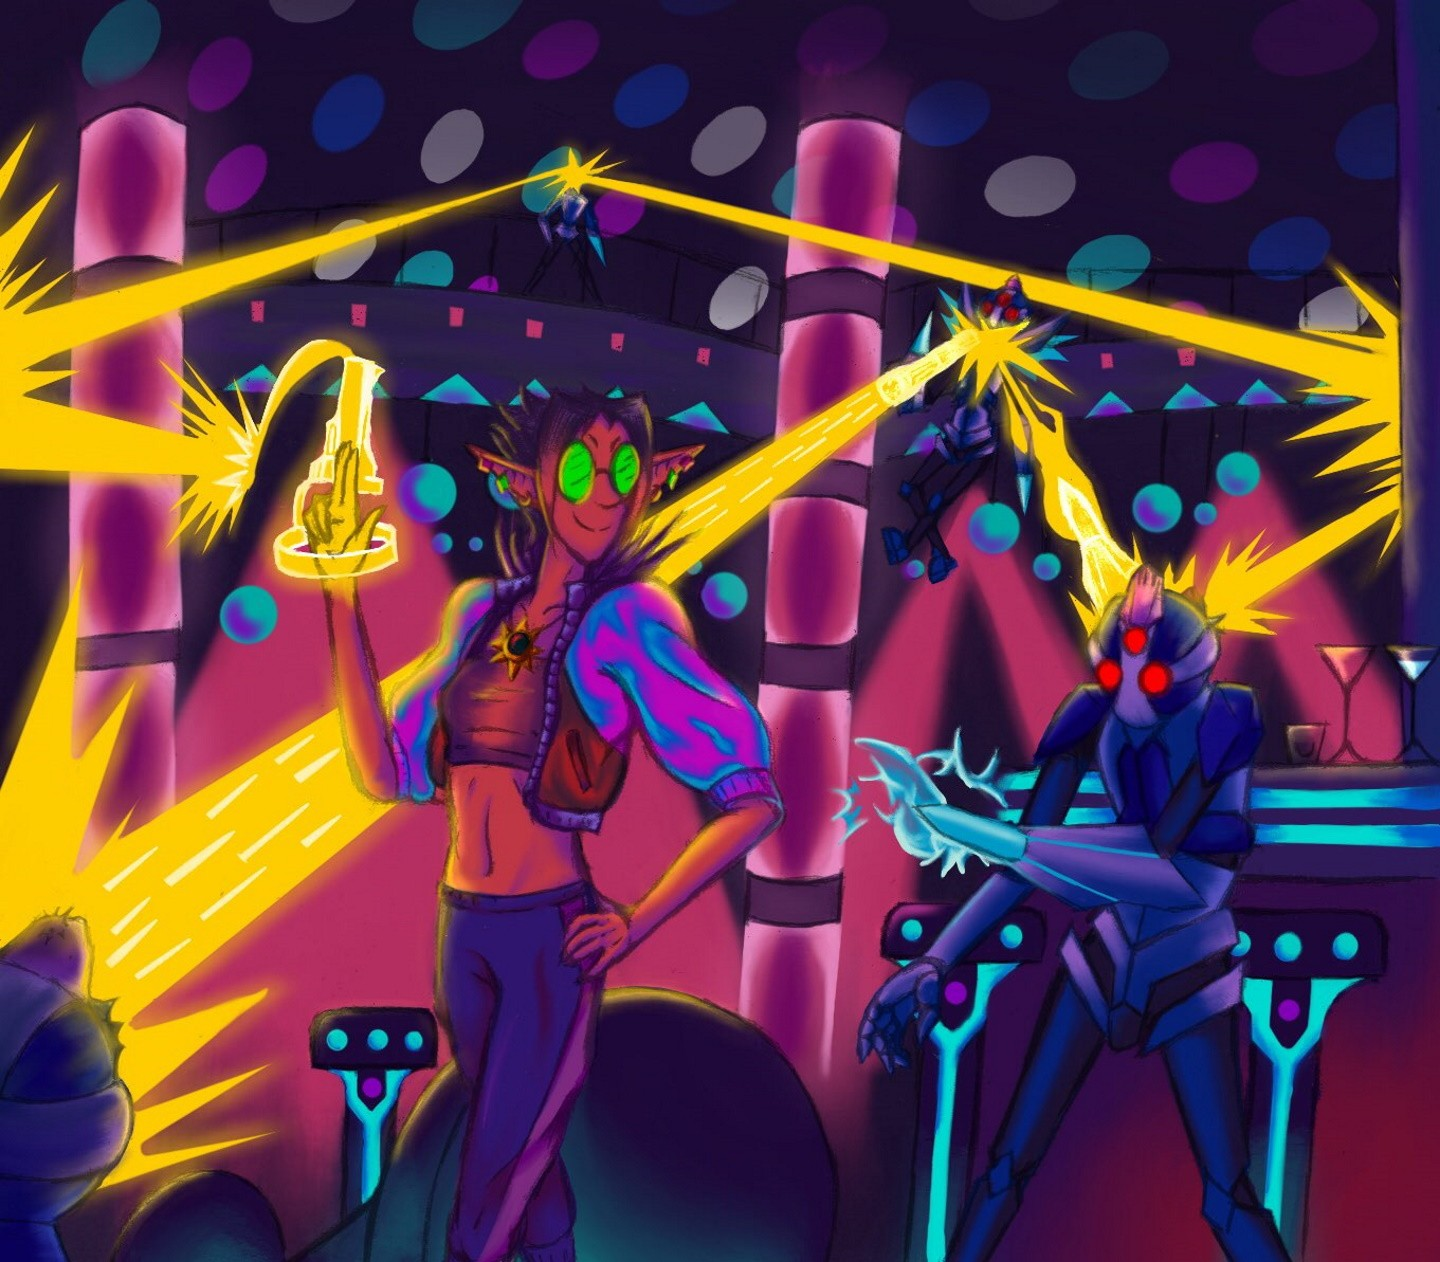 An elf woman in a cyber-club reaching its closing hours uses her gold laser fingers to deal with intruding security units in casual style, surrounded by lights of varying pinks, purples and cyans.